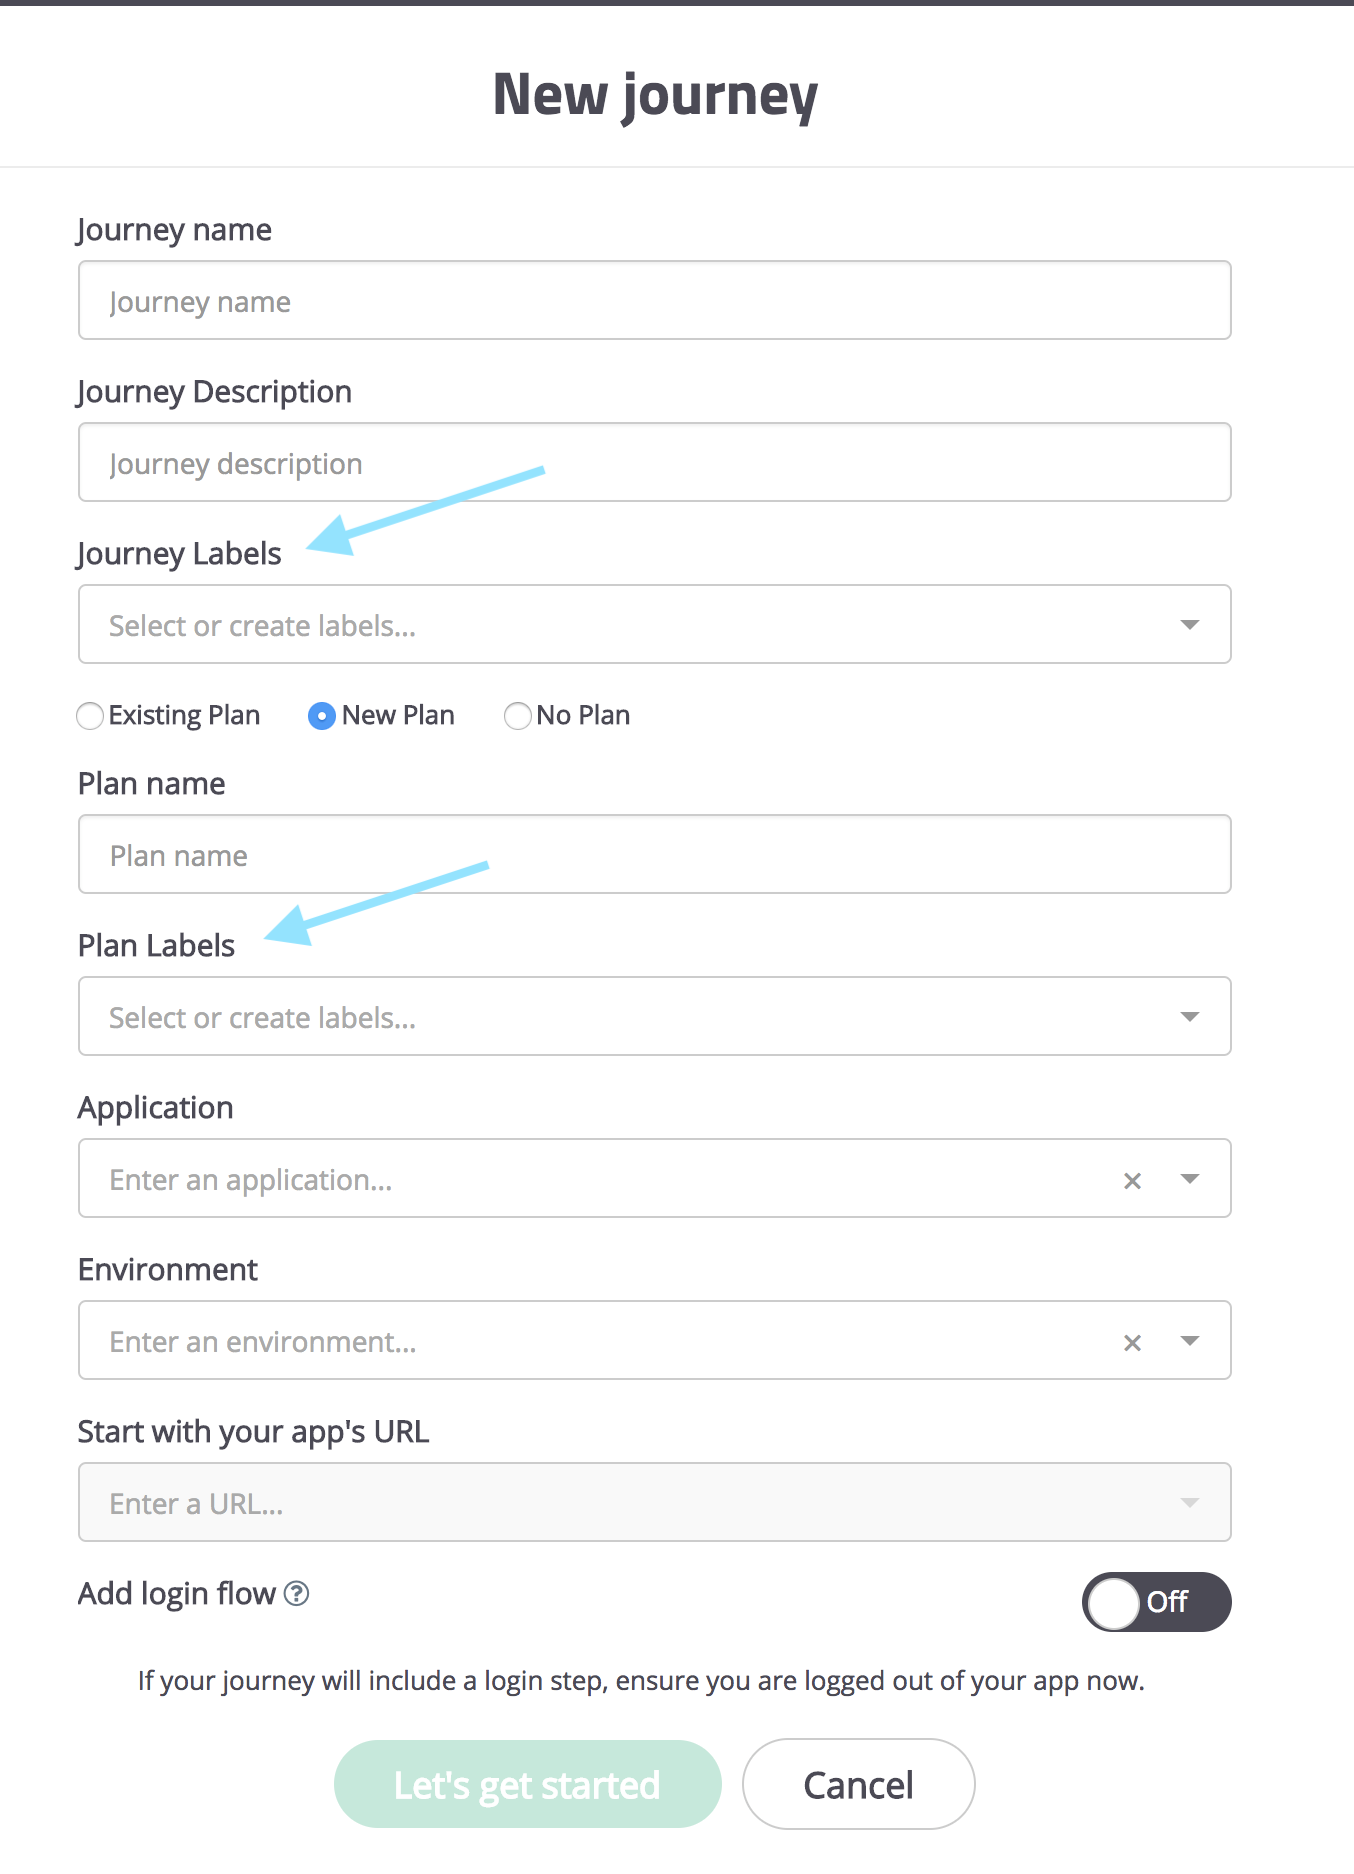 When creating a new journey, you can simply add journey labels below the journey description. If you're adding the journey to a new plan too, go ahead and add labels to that new plan in the same form!